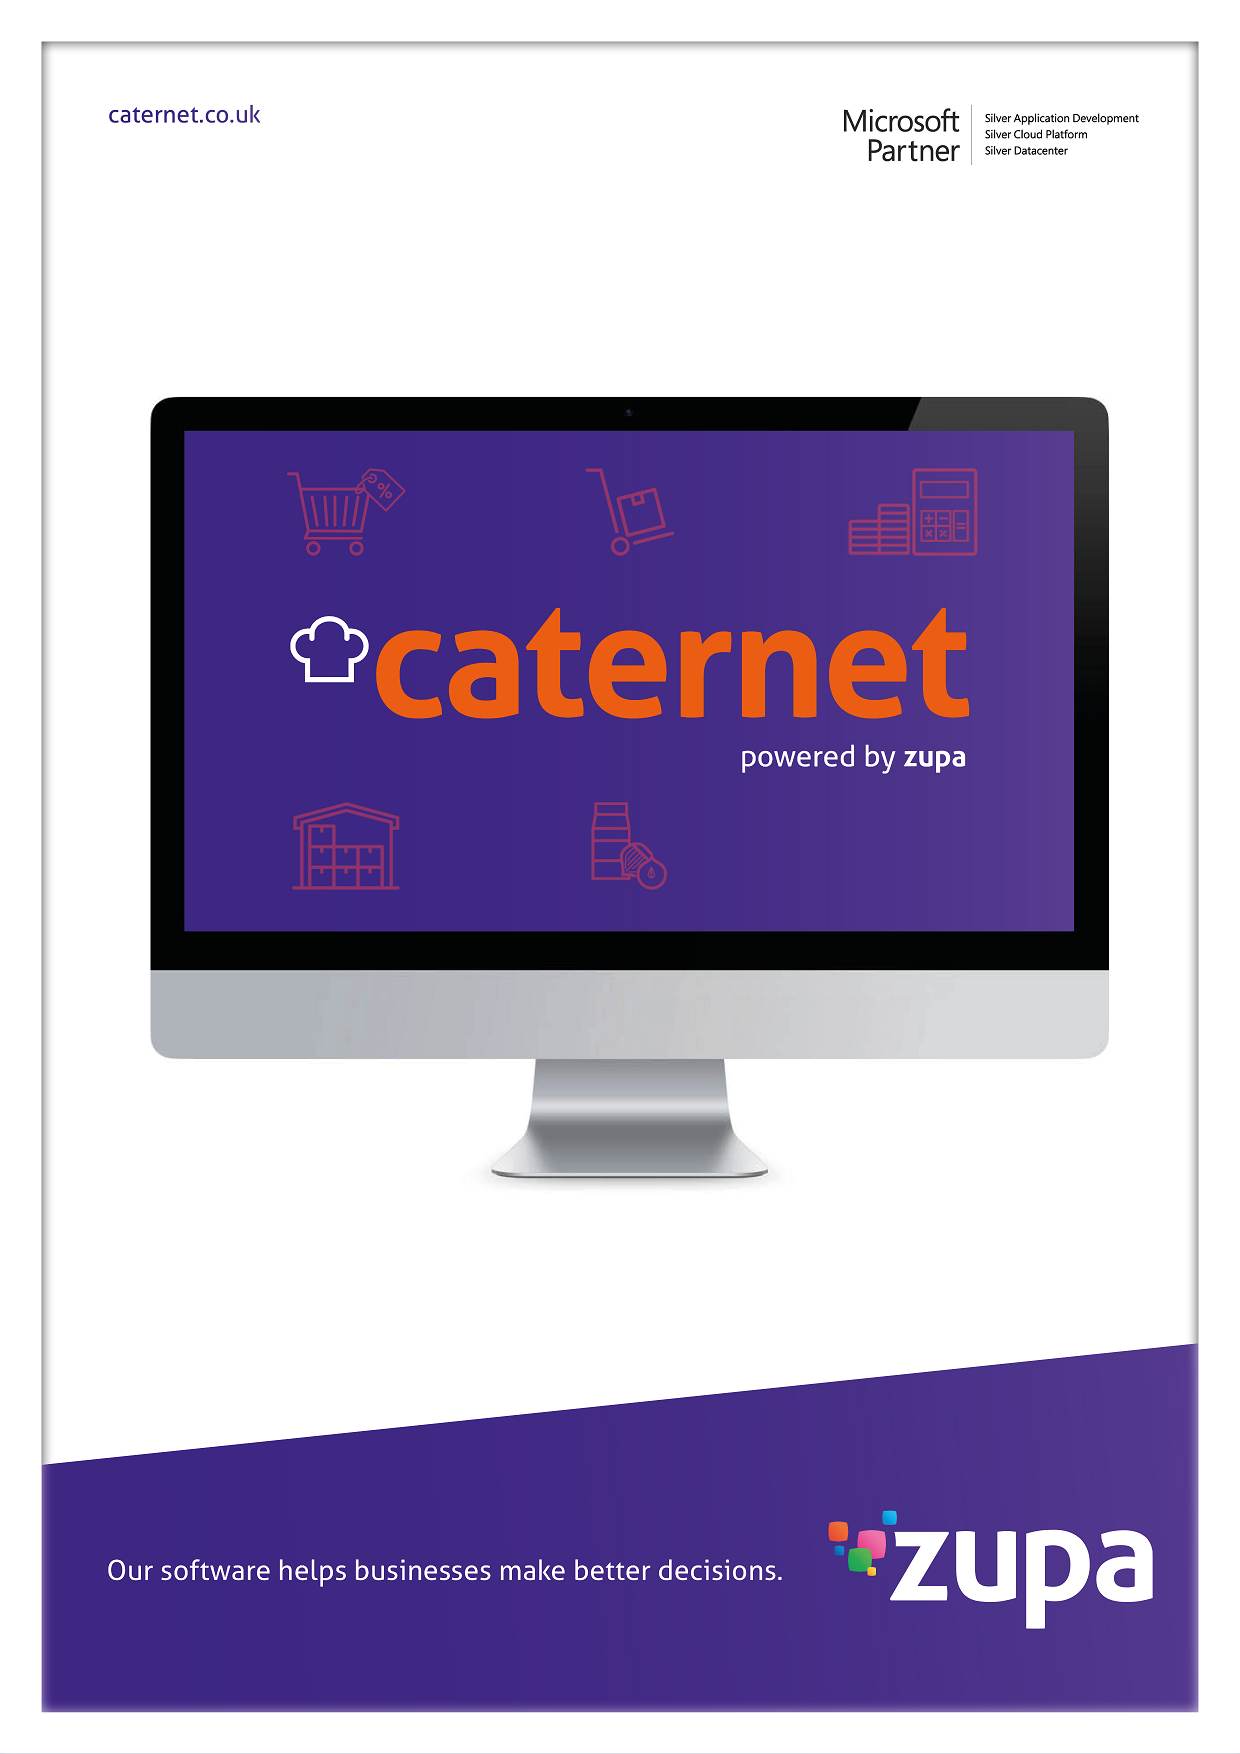 Why choose Caternet